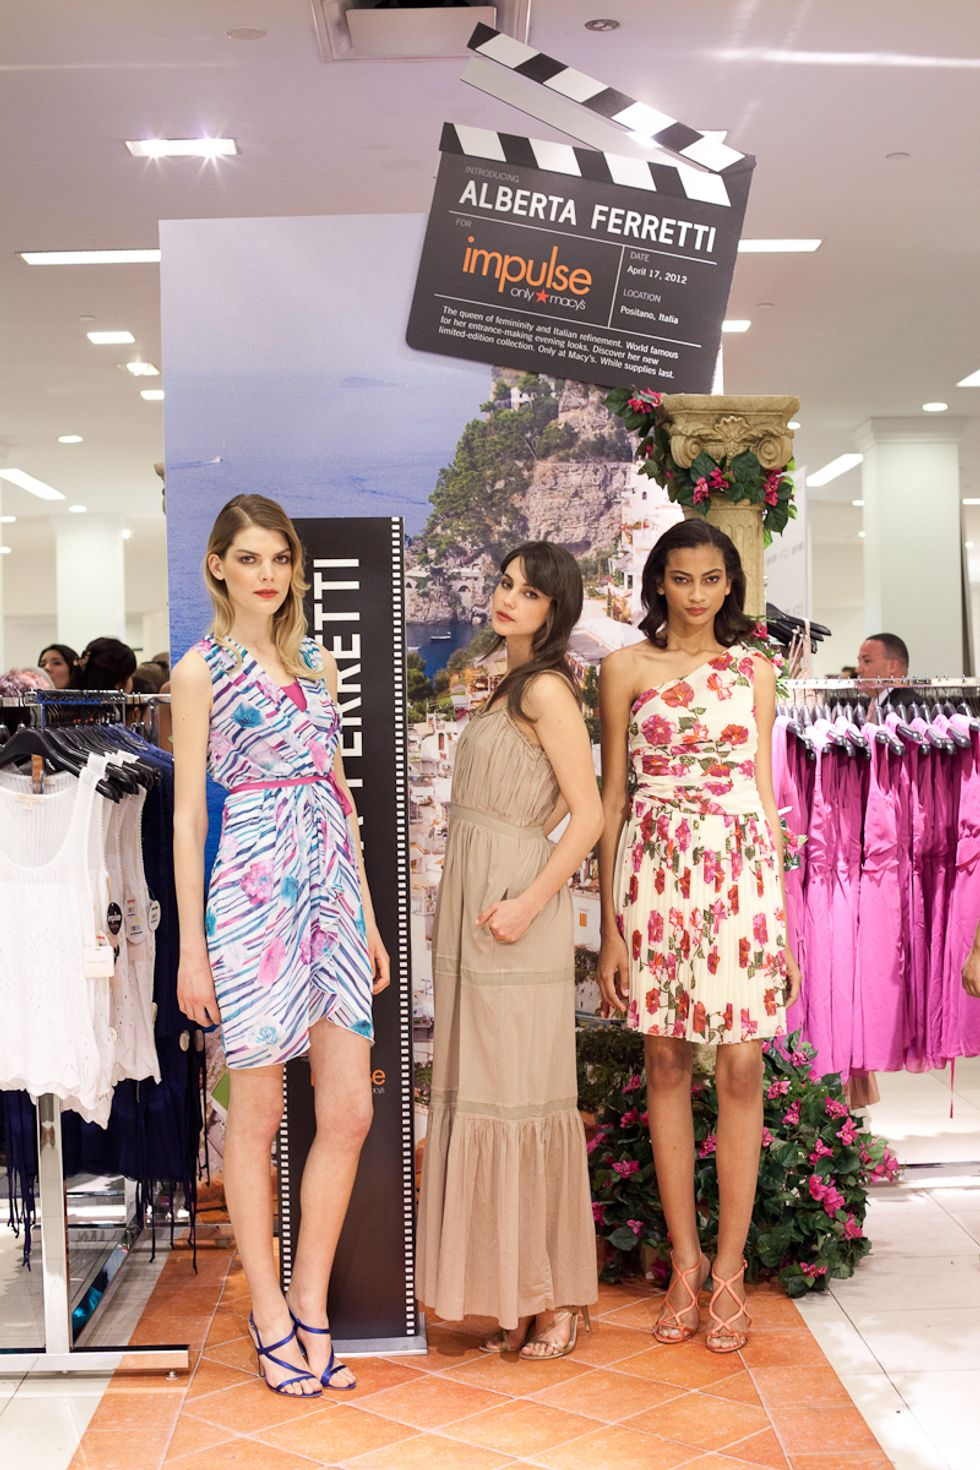 Macy's + PAPER Celebrate Launch of Alberta Ferretti for Impulse